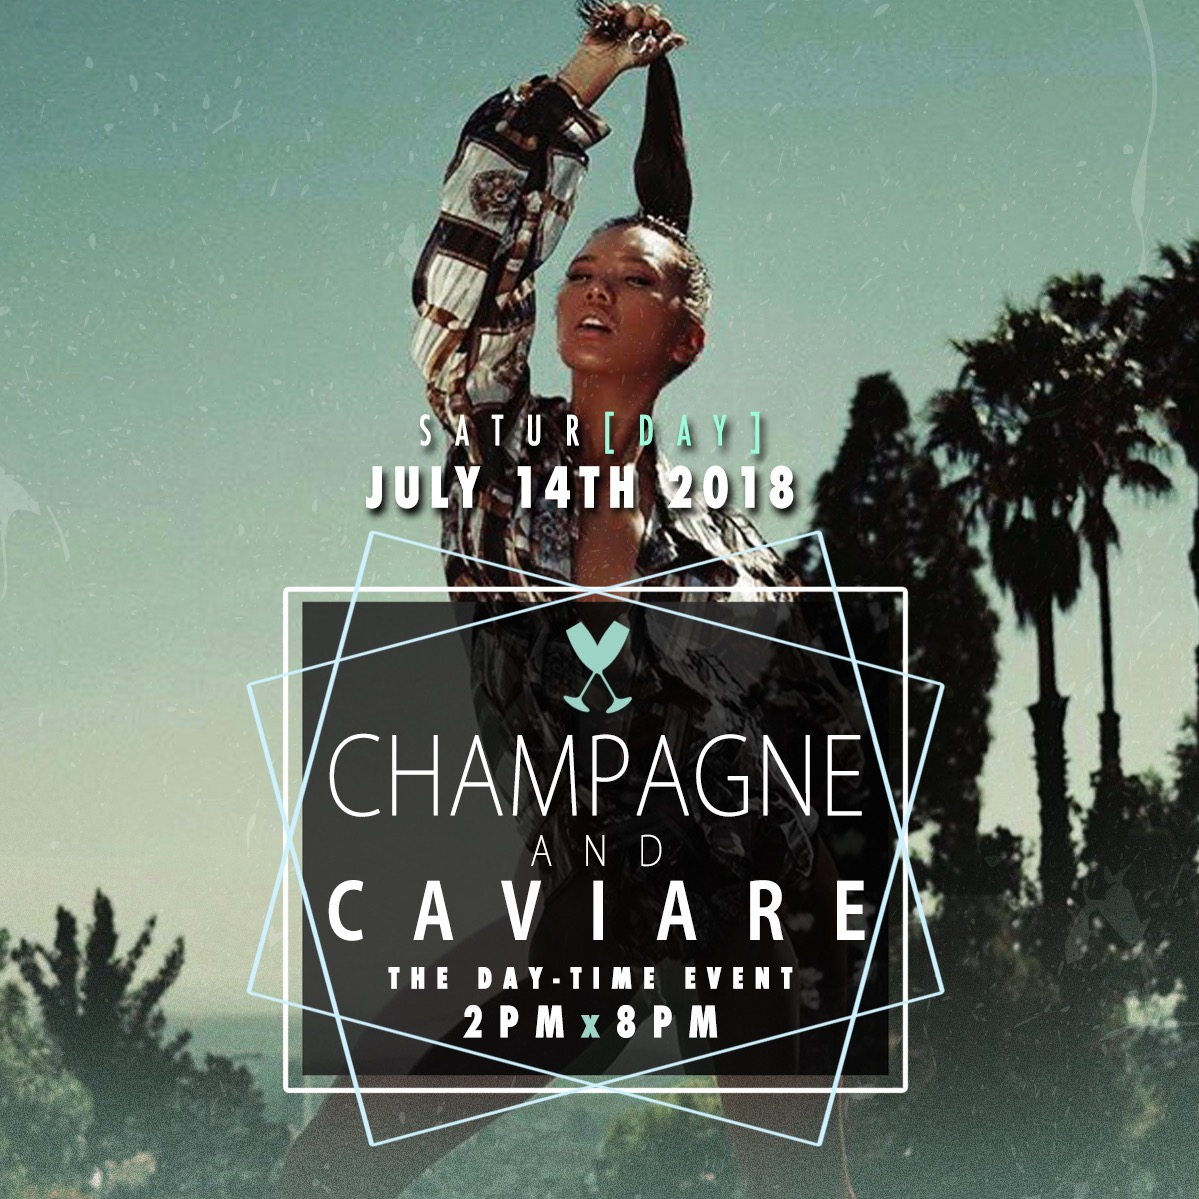 Champagne & Caviare The Day Event July 14th Start Time 2pm to 8pm